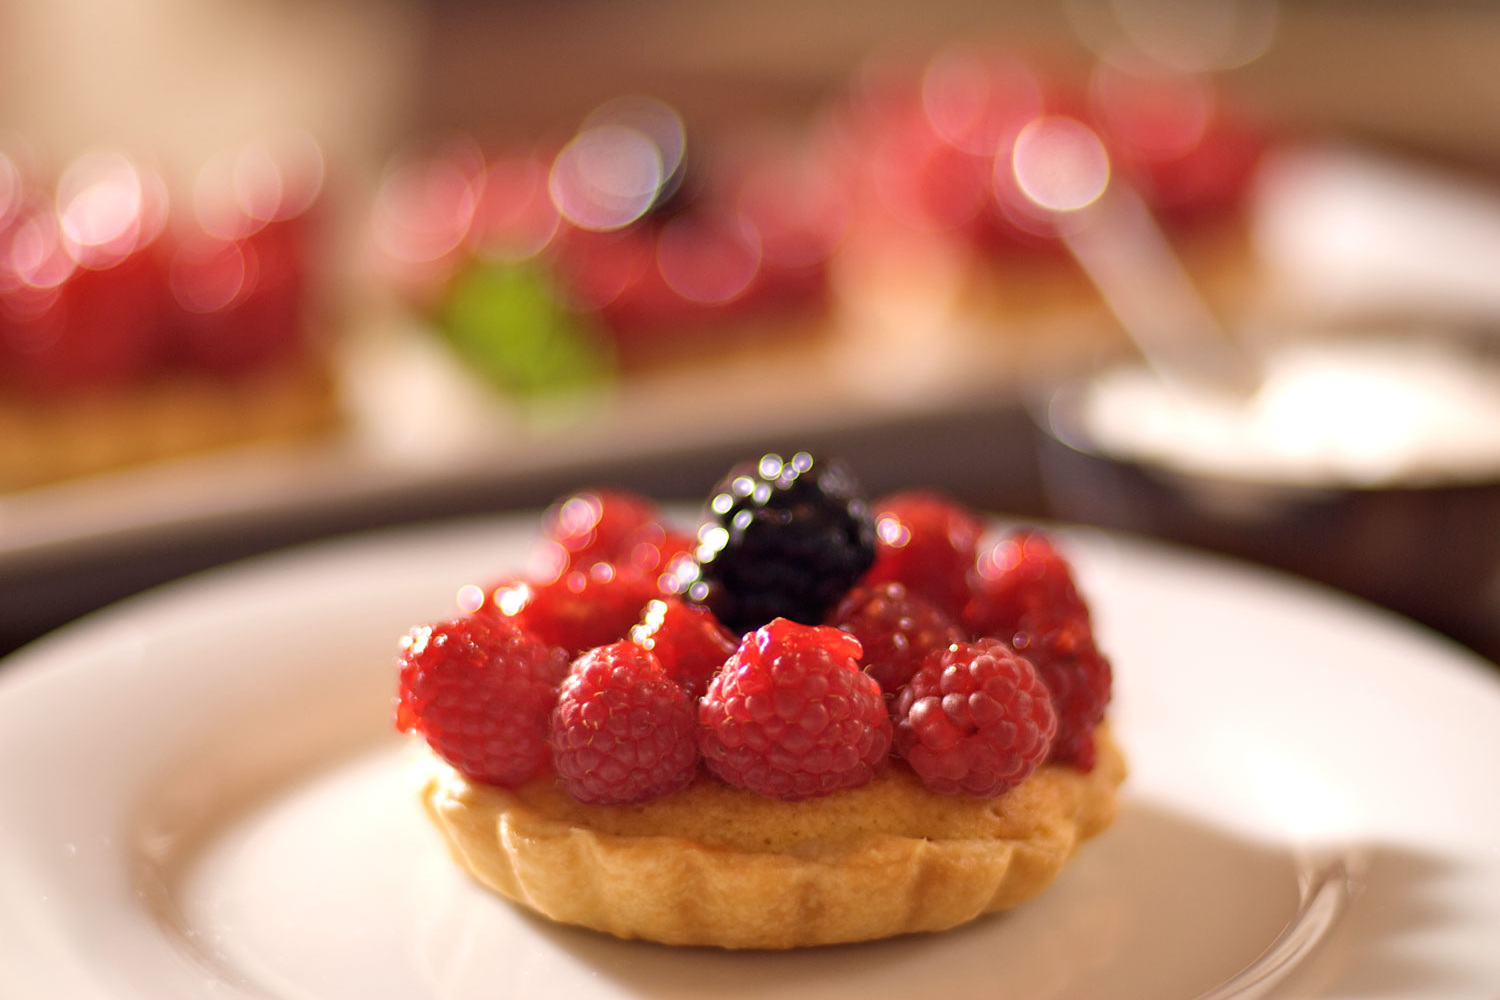 ktk_food_tart8.jpg